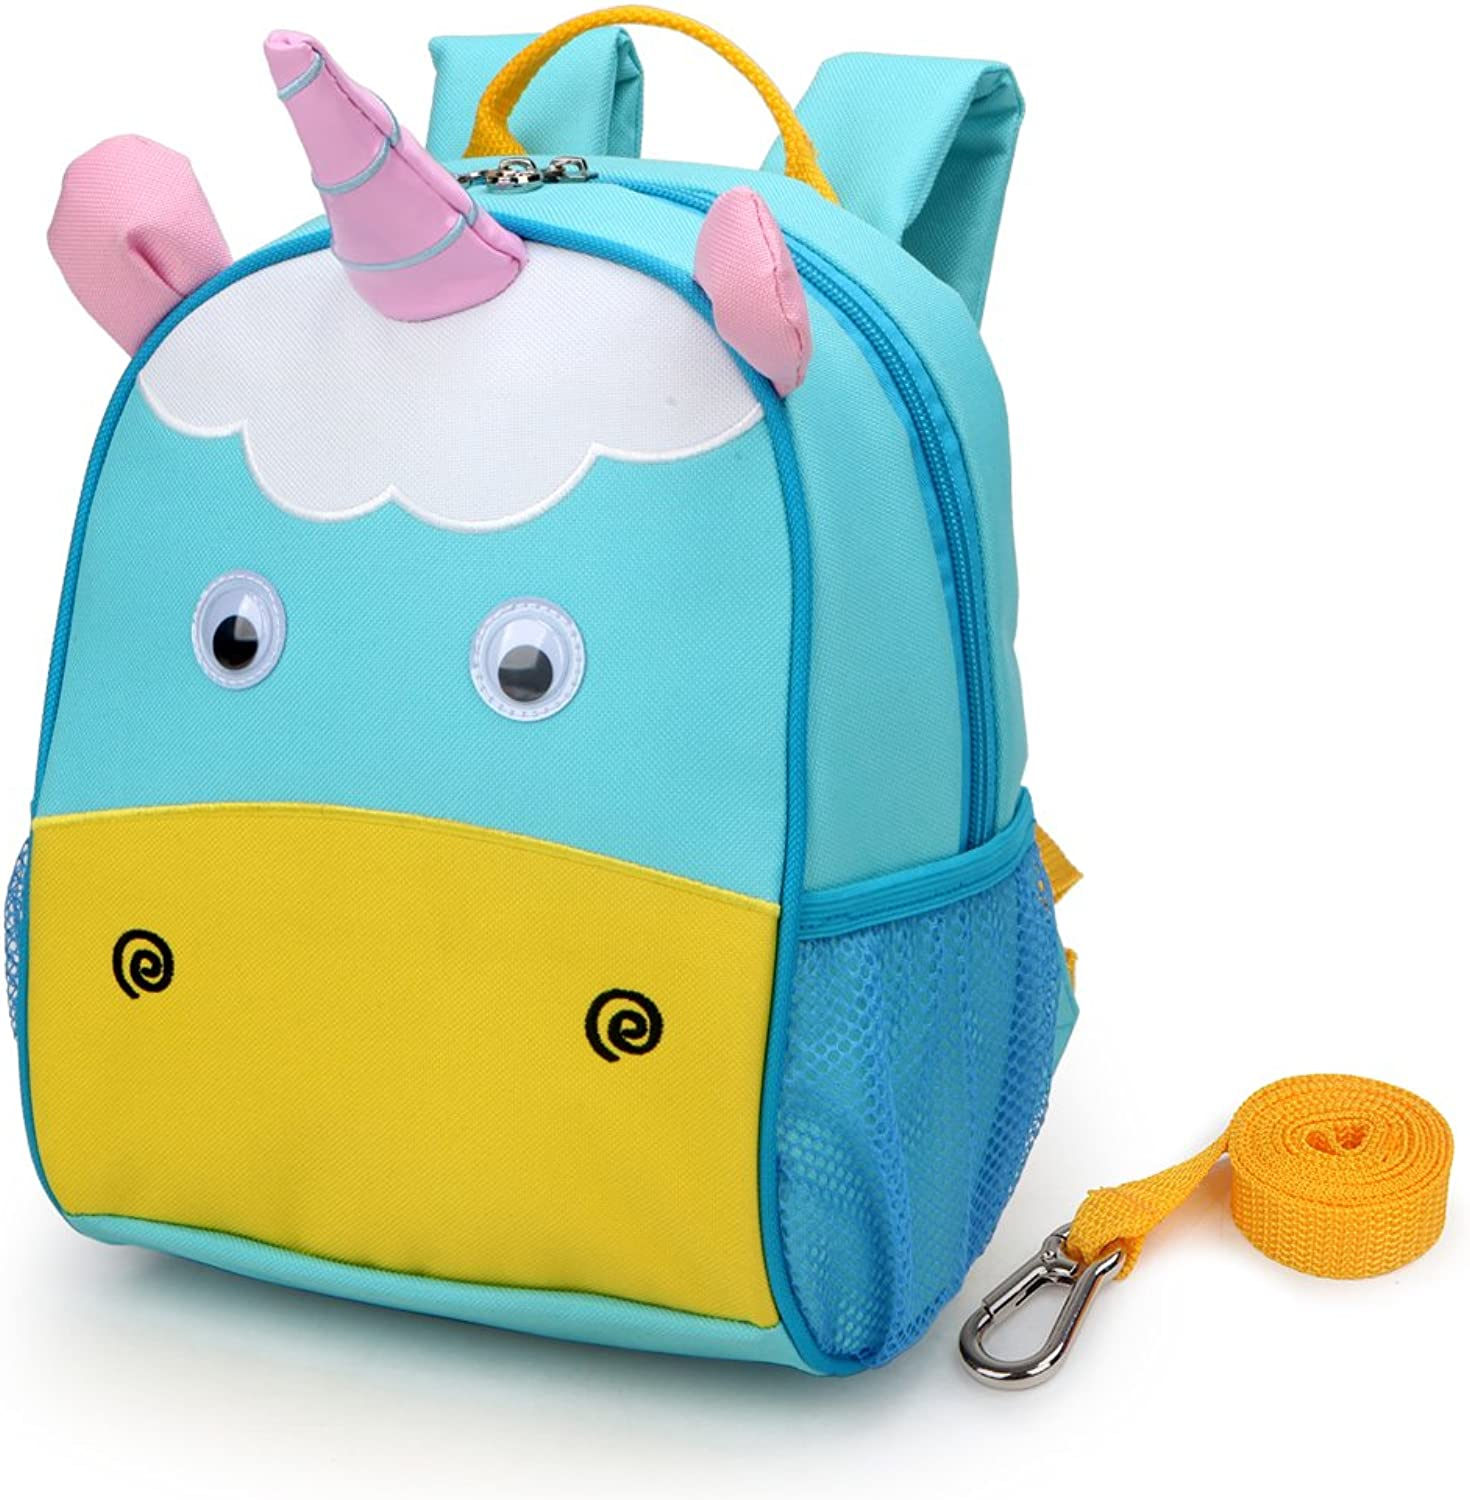 Yodo Upgraded Kids Insulated Toddler Backpack with Safety Harness Leash and Name Label - Playful Preschool Kids Lunch Bag, Unicorn